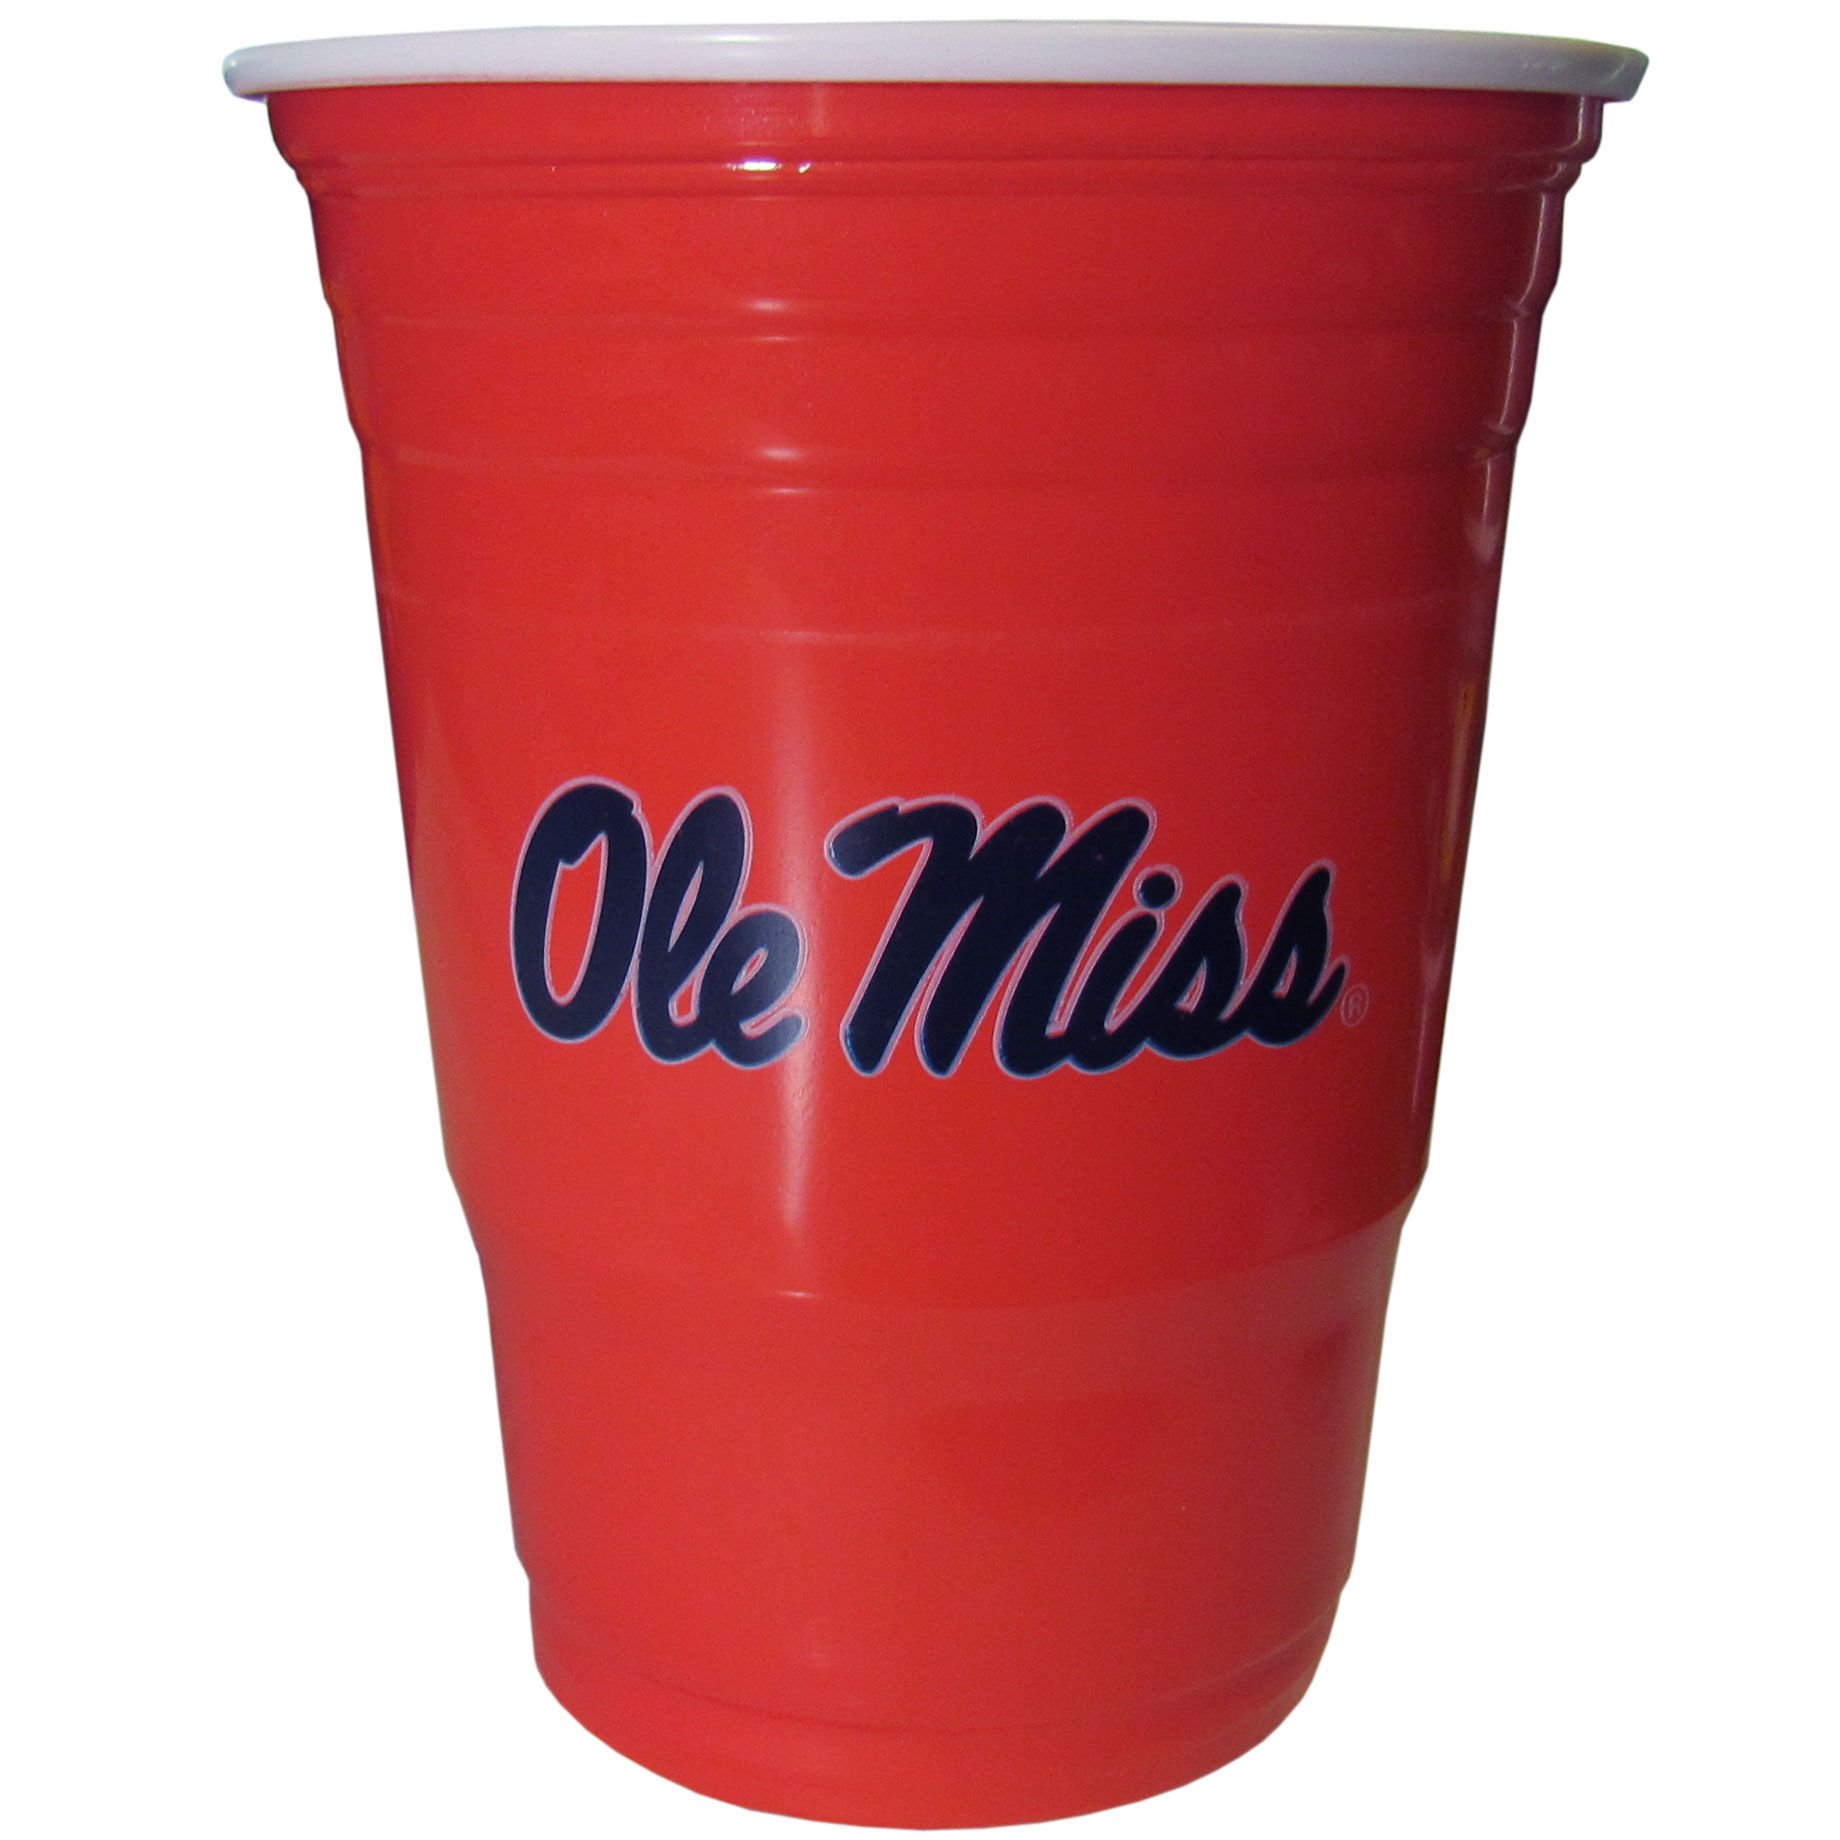 Mississippi Rebels Plastic Game Day Cups 2 sleeves of 18 (36 Cups) - Our 18 ounce game day cups are what every tailgating or backyard events needs! The cups feature a big Mississippi Rebels logo so you can show off your team pride. The popular 18 ounce size is perfect for drinks or ping pong balls! 2 sleeves of 18 cups, 36 cups in total.